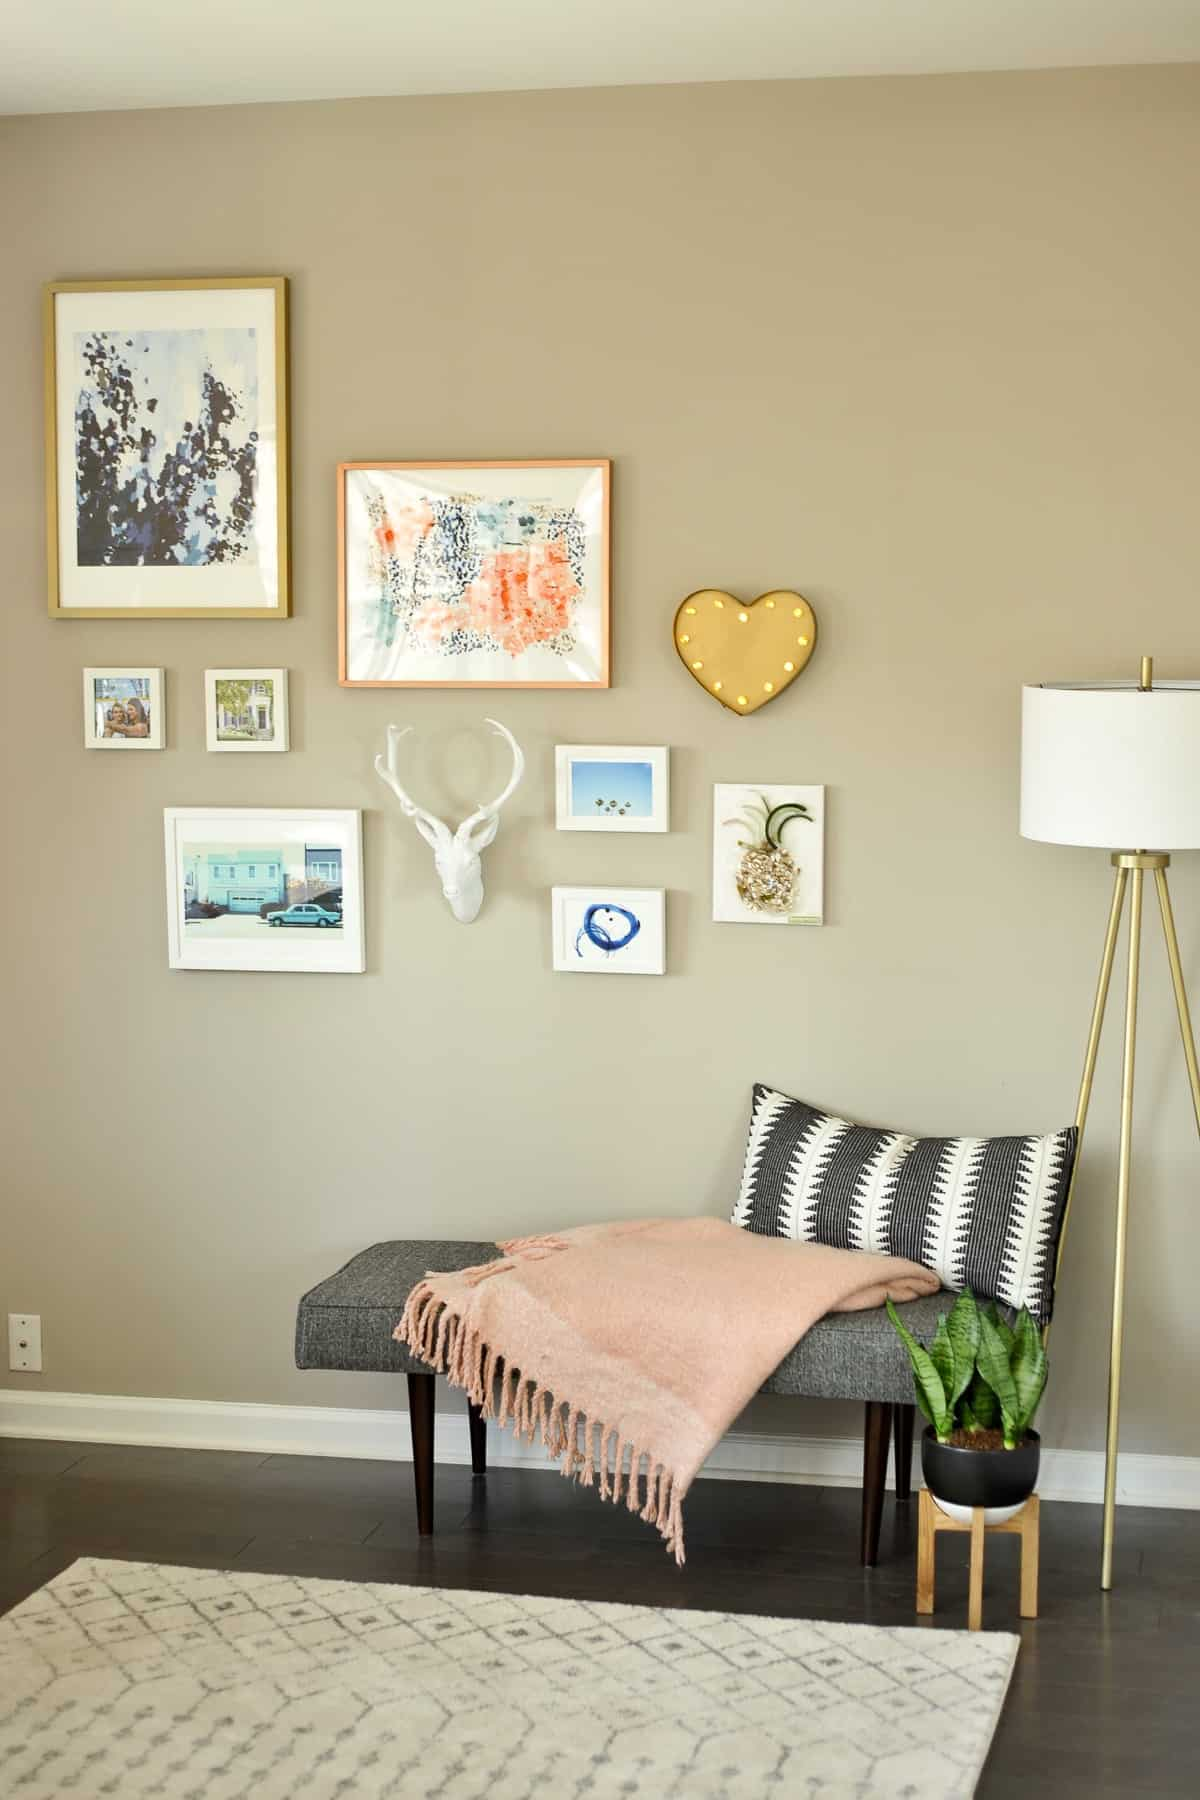 Gallery wall ideas - My Style Vita - @mystylevita - 1